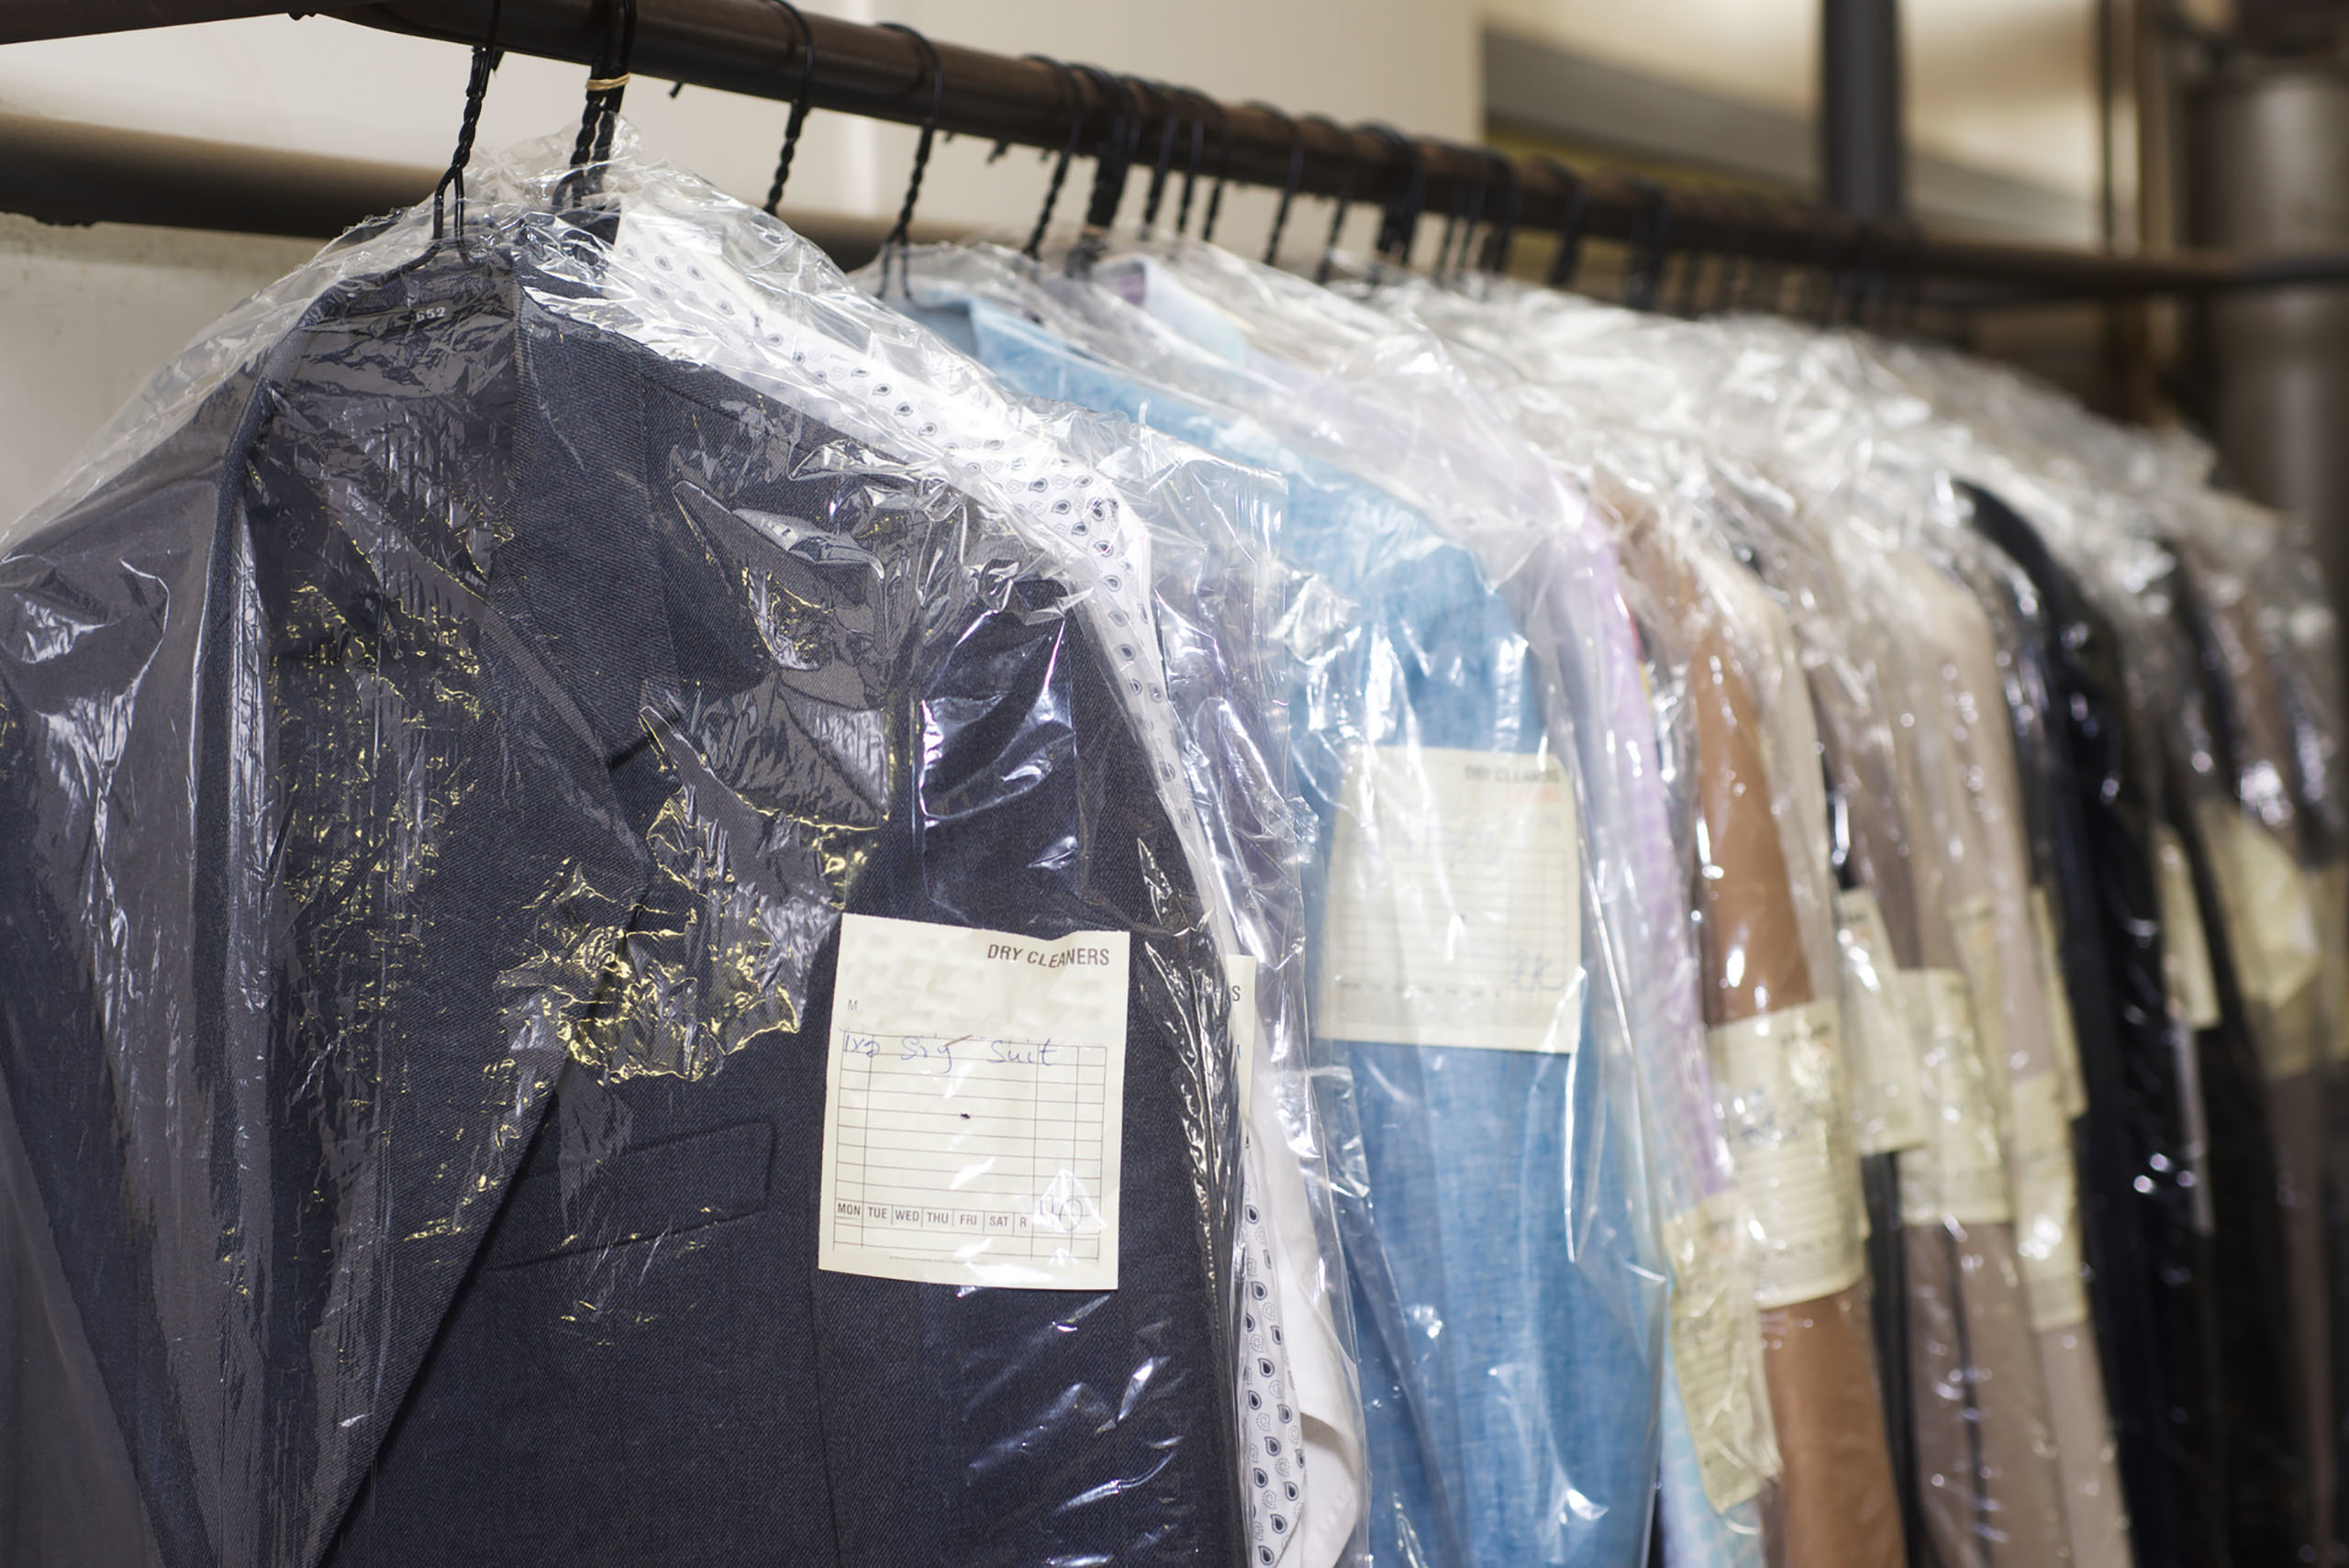 Conroe tx conroe super dry clean find conroe super dry for Wedding dress dry cleaning near me